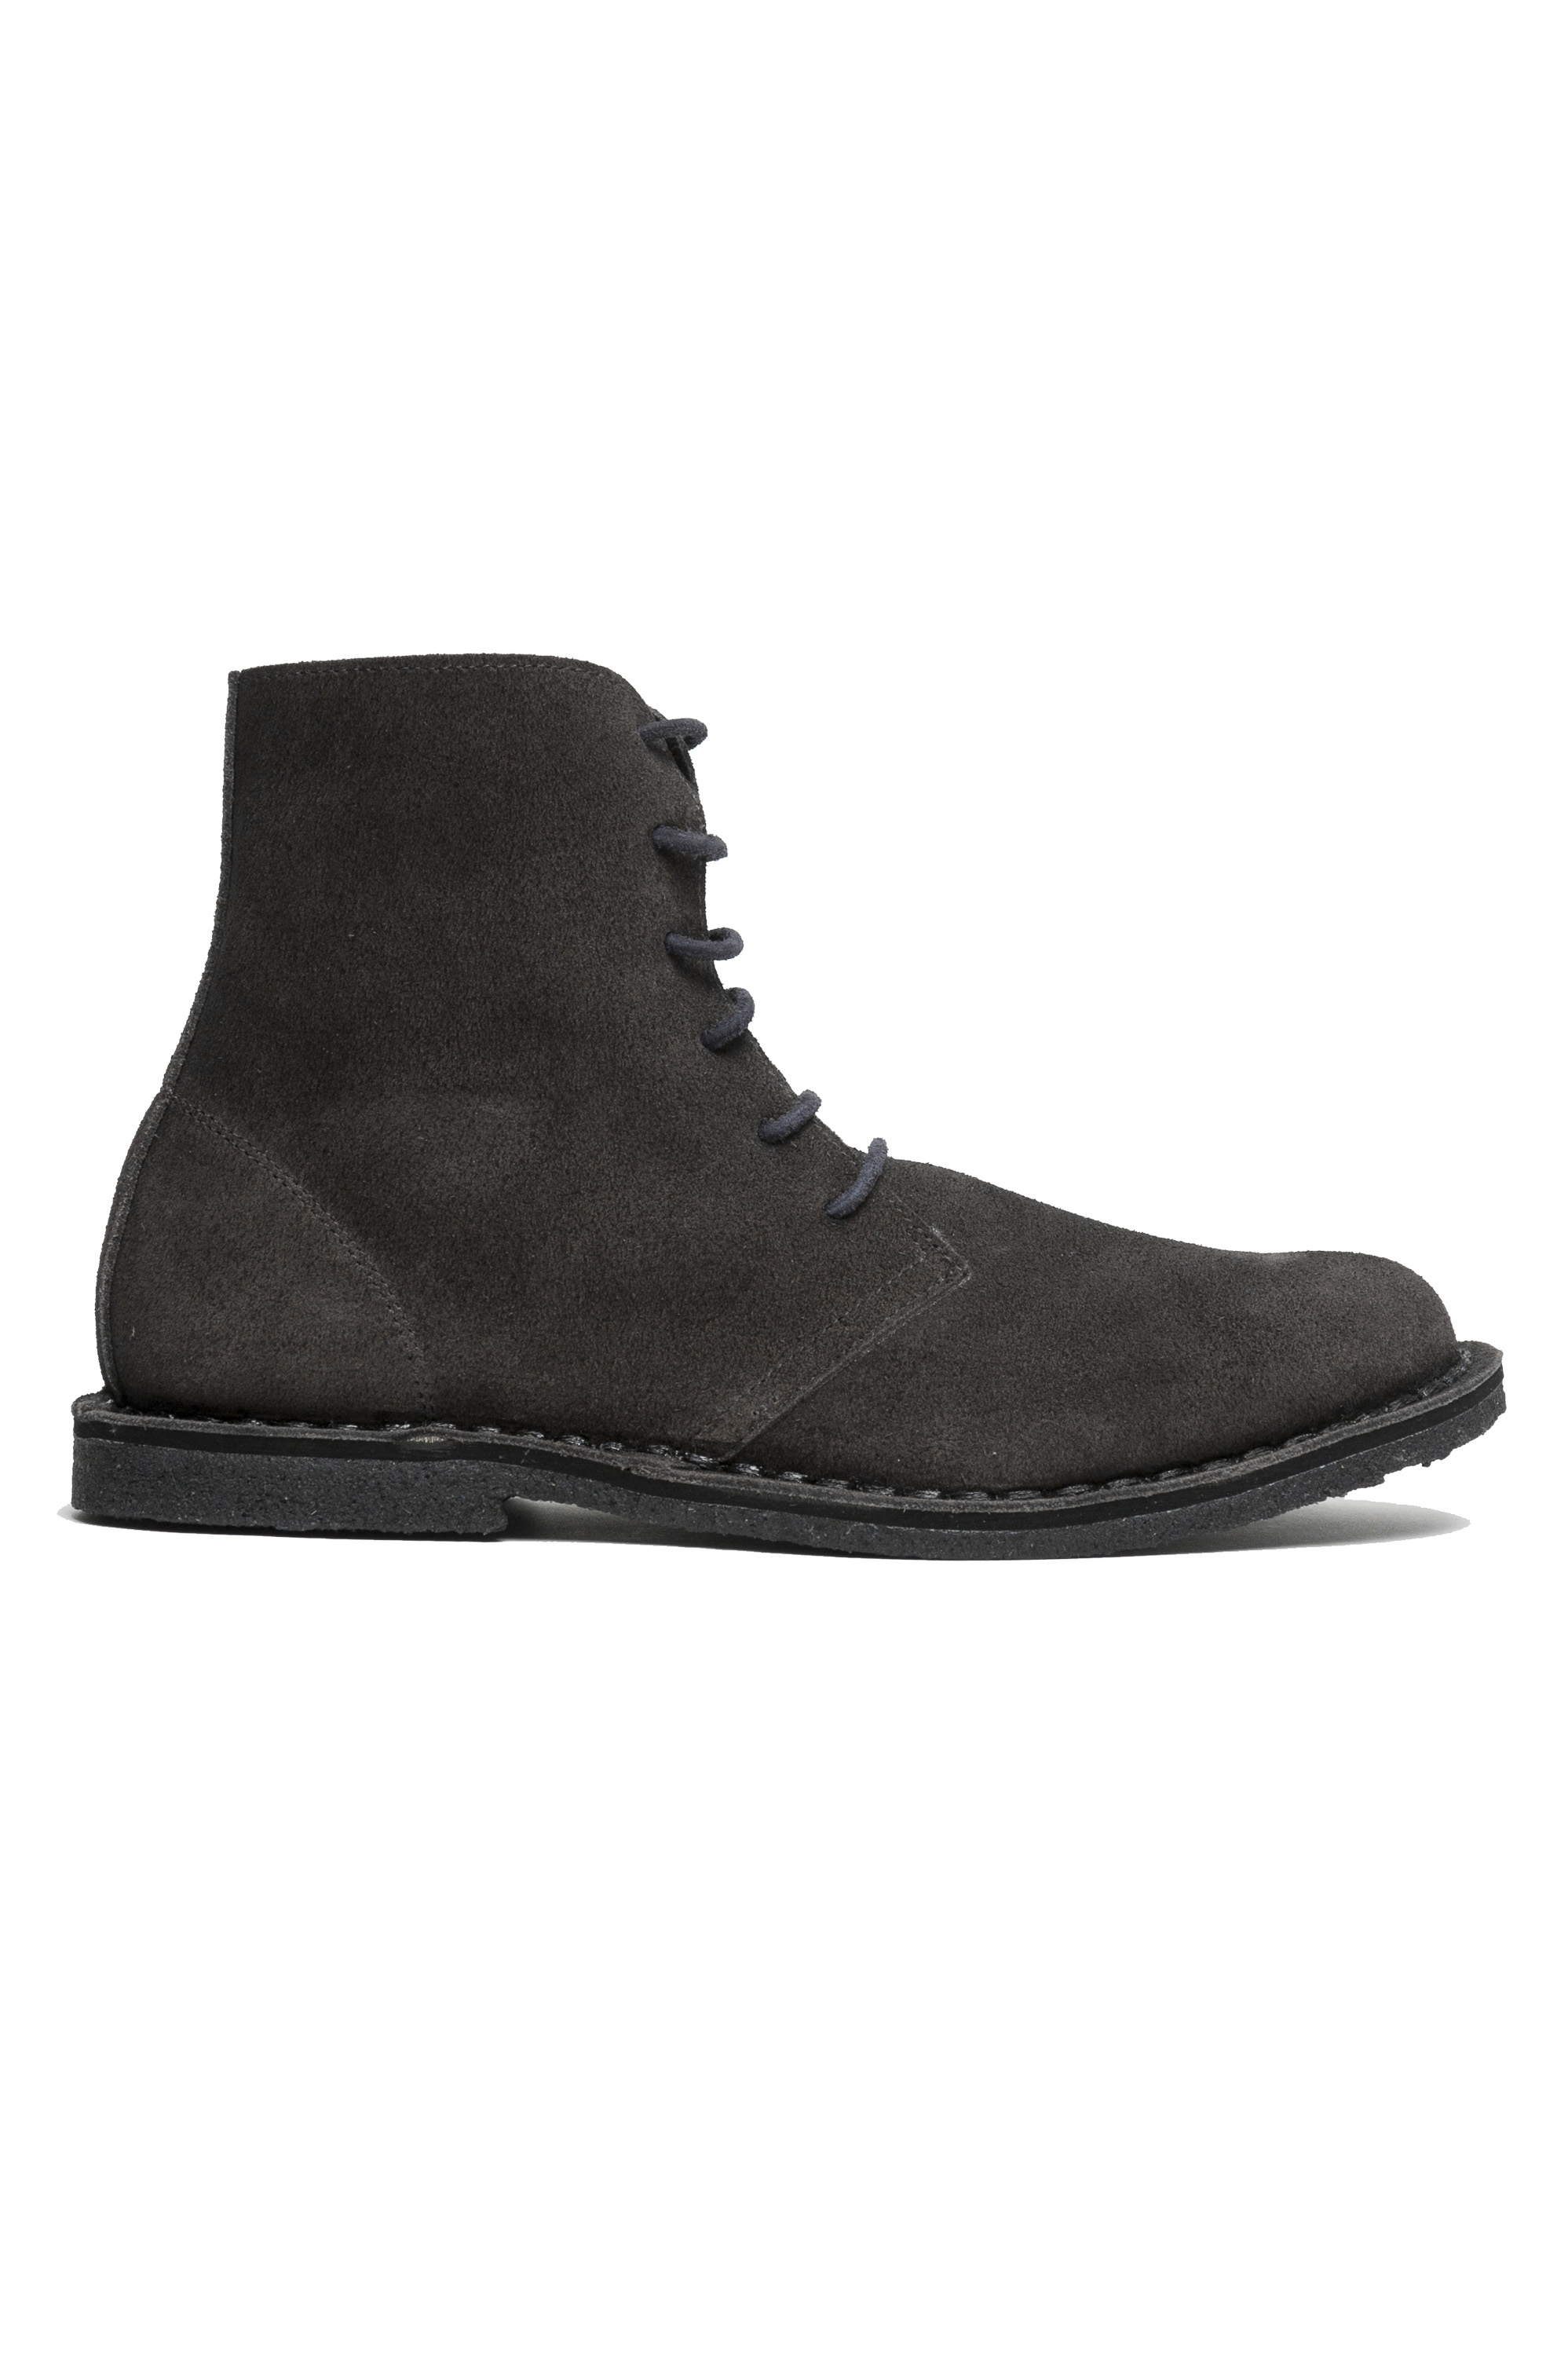 SBU 01911_19AW High top desert boots in grey suede leather 01